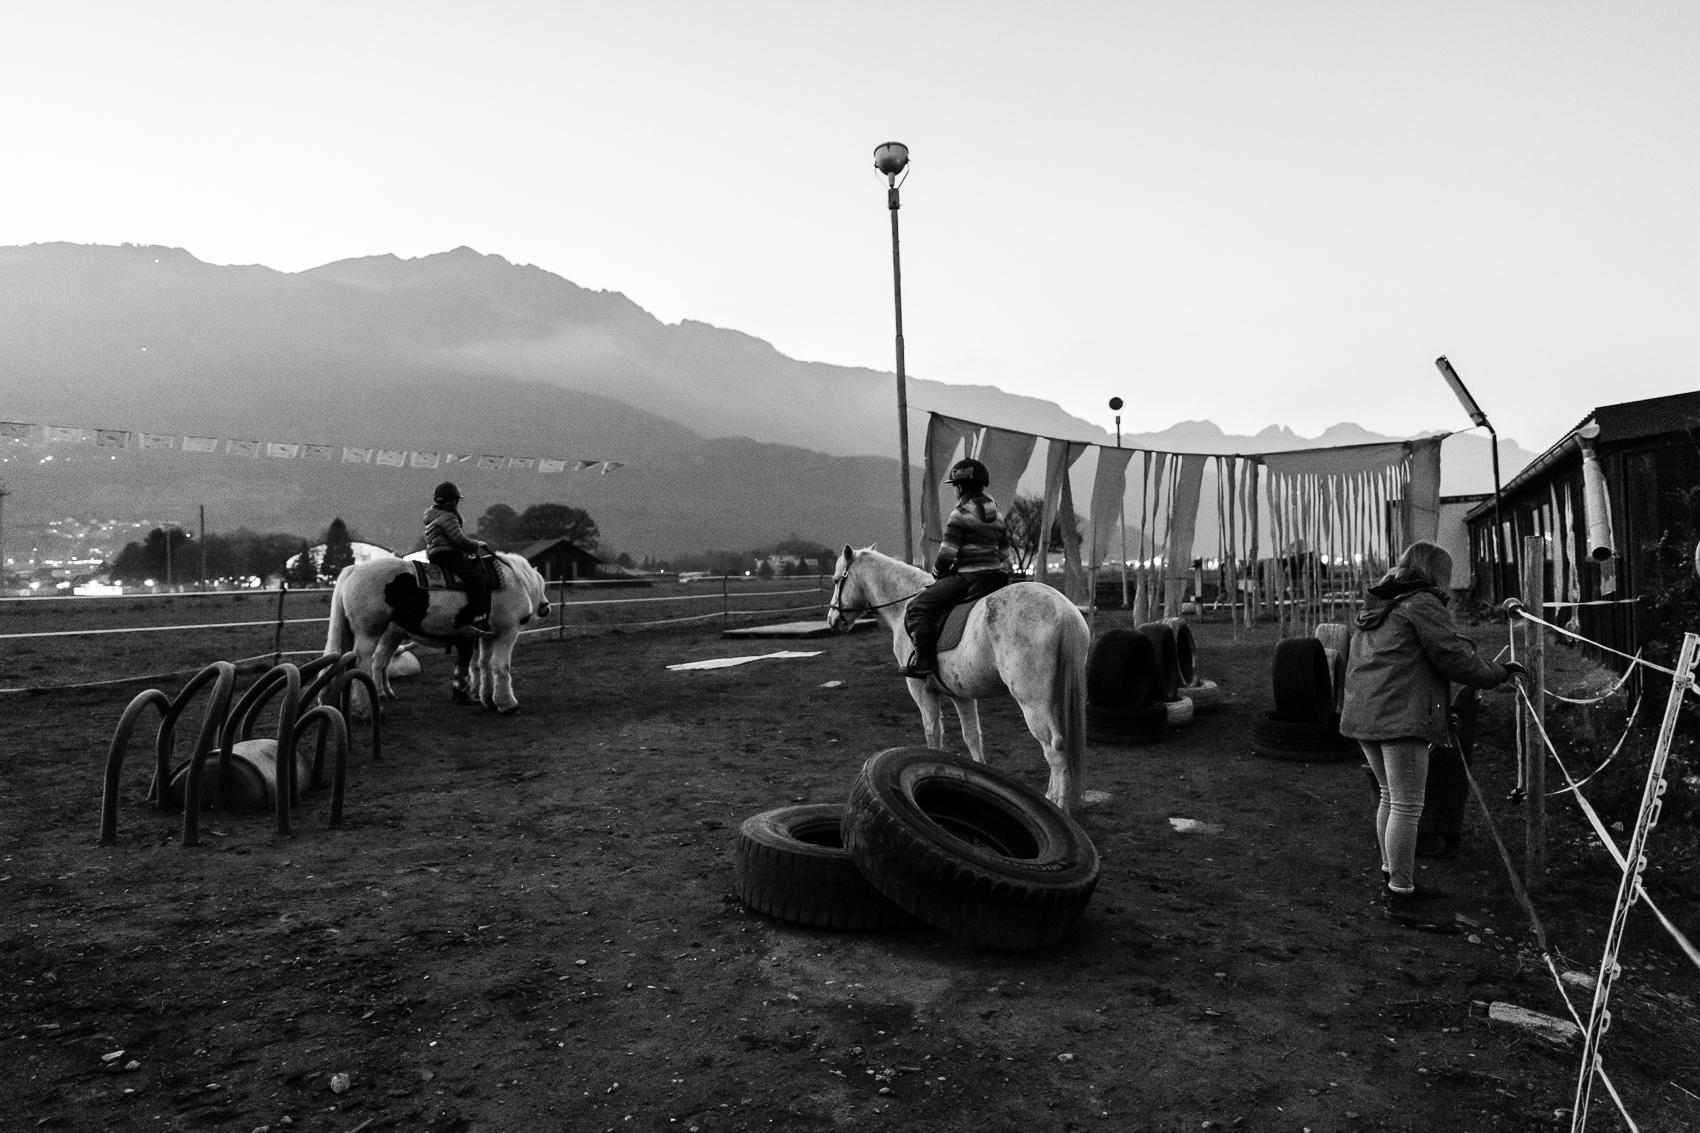 almost in the dark - but the dedicated staff at the horse stables kept their promise of an unforgettable horse experience.